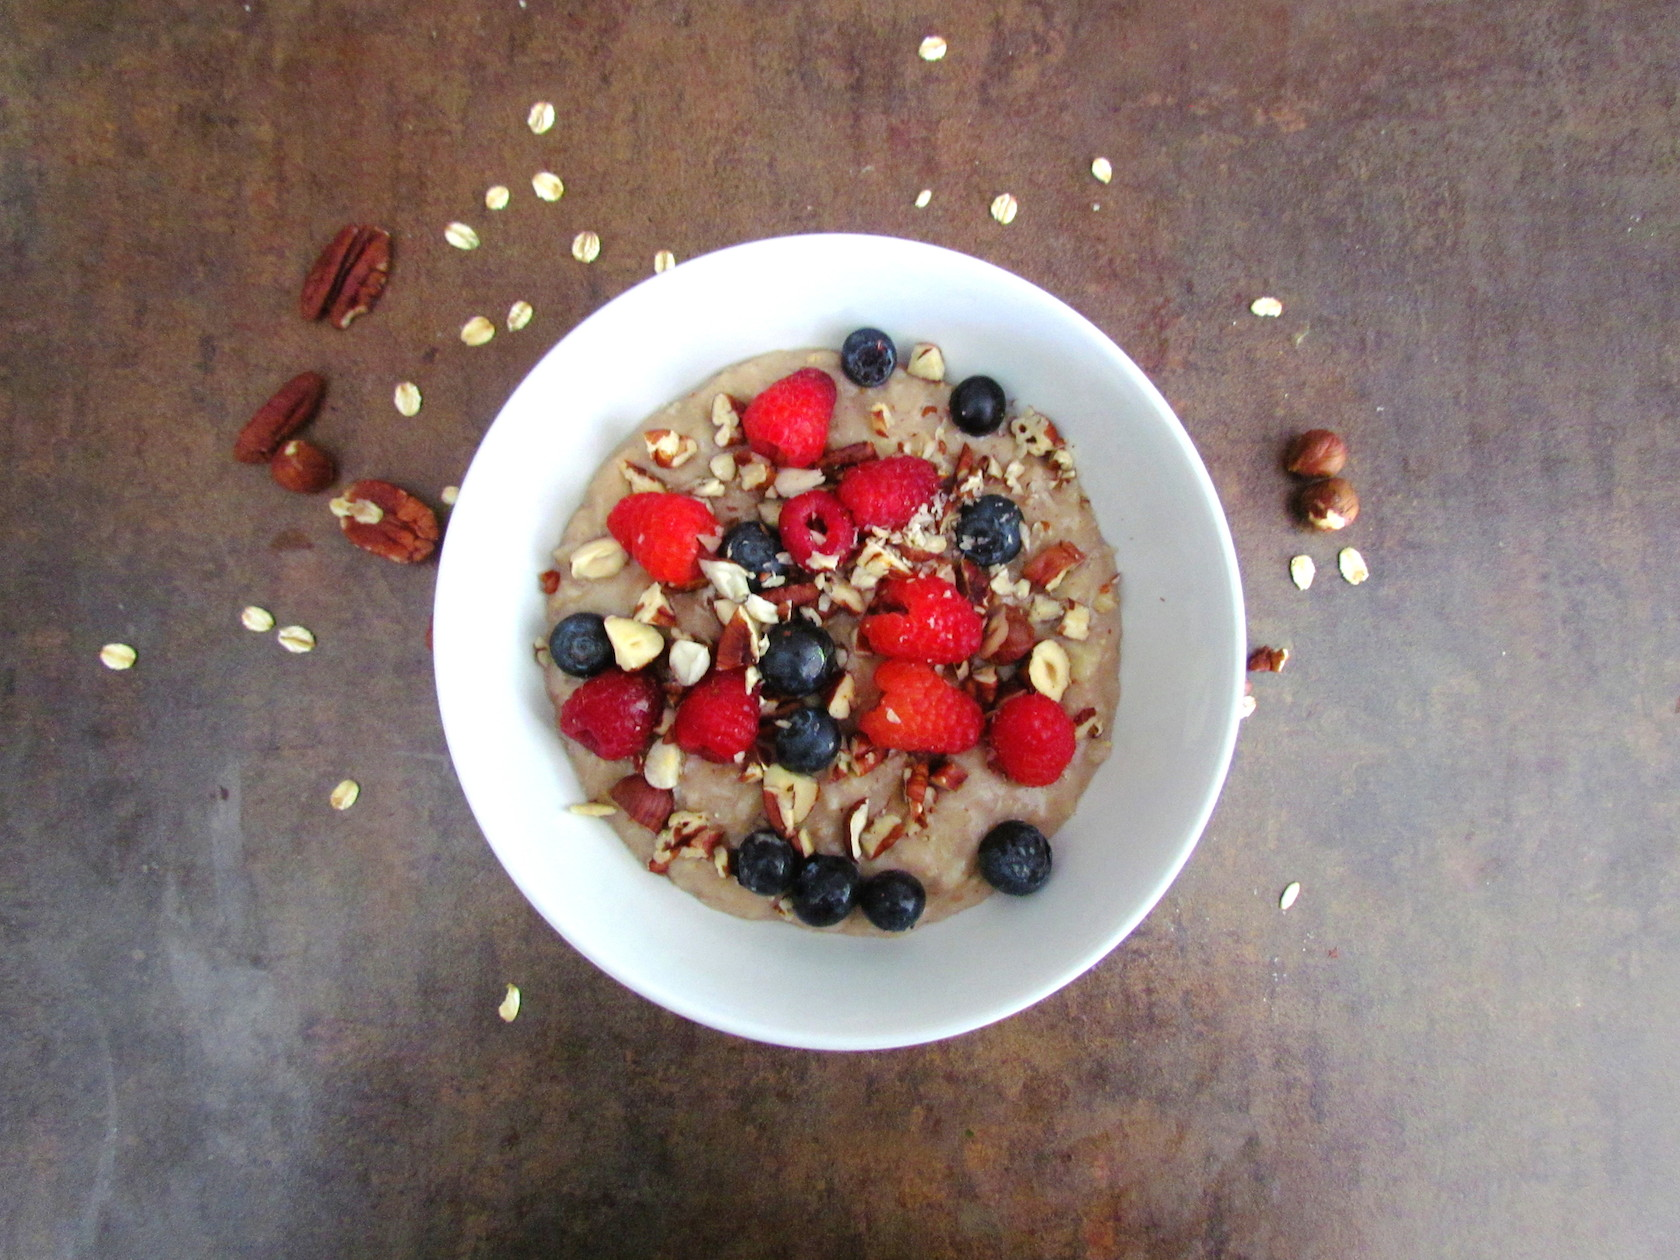 coconut porridge topped with berries and nuts